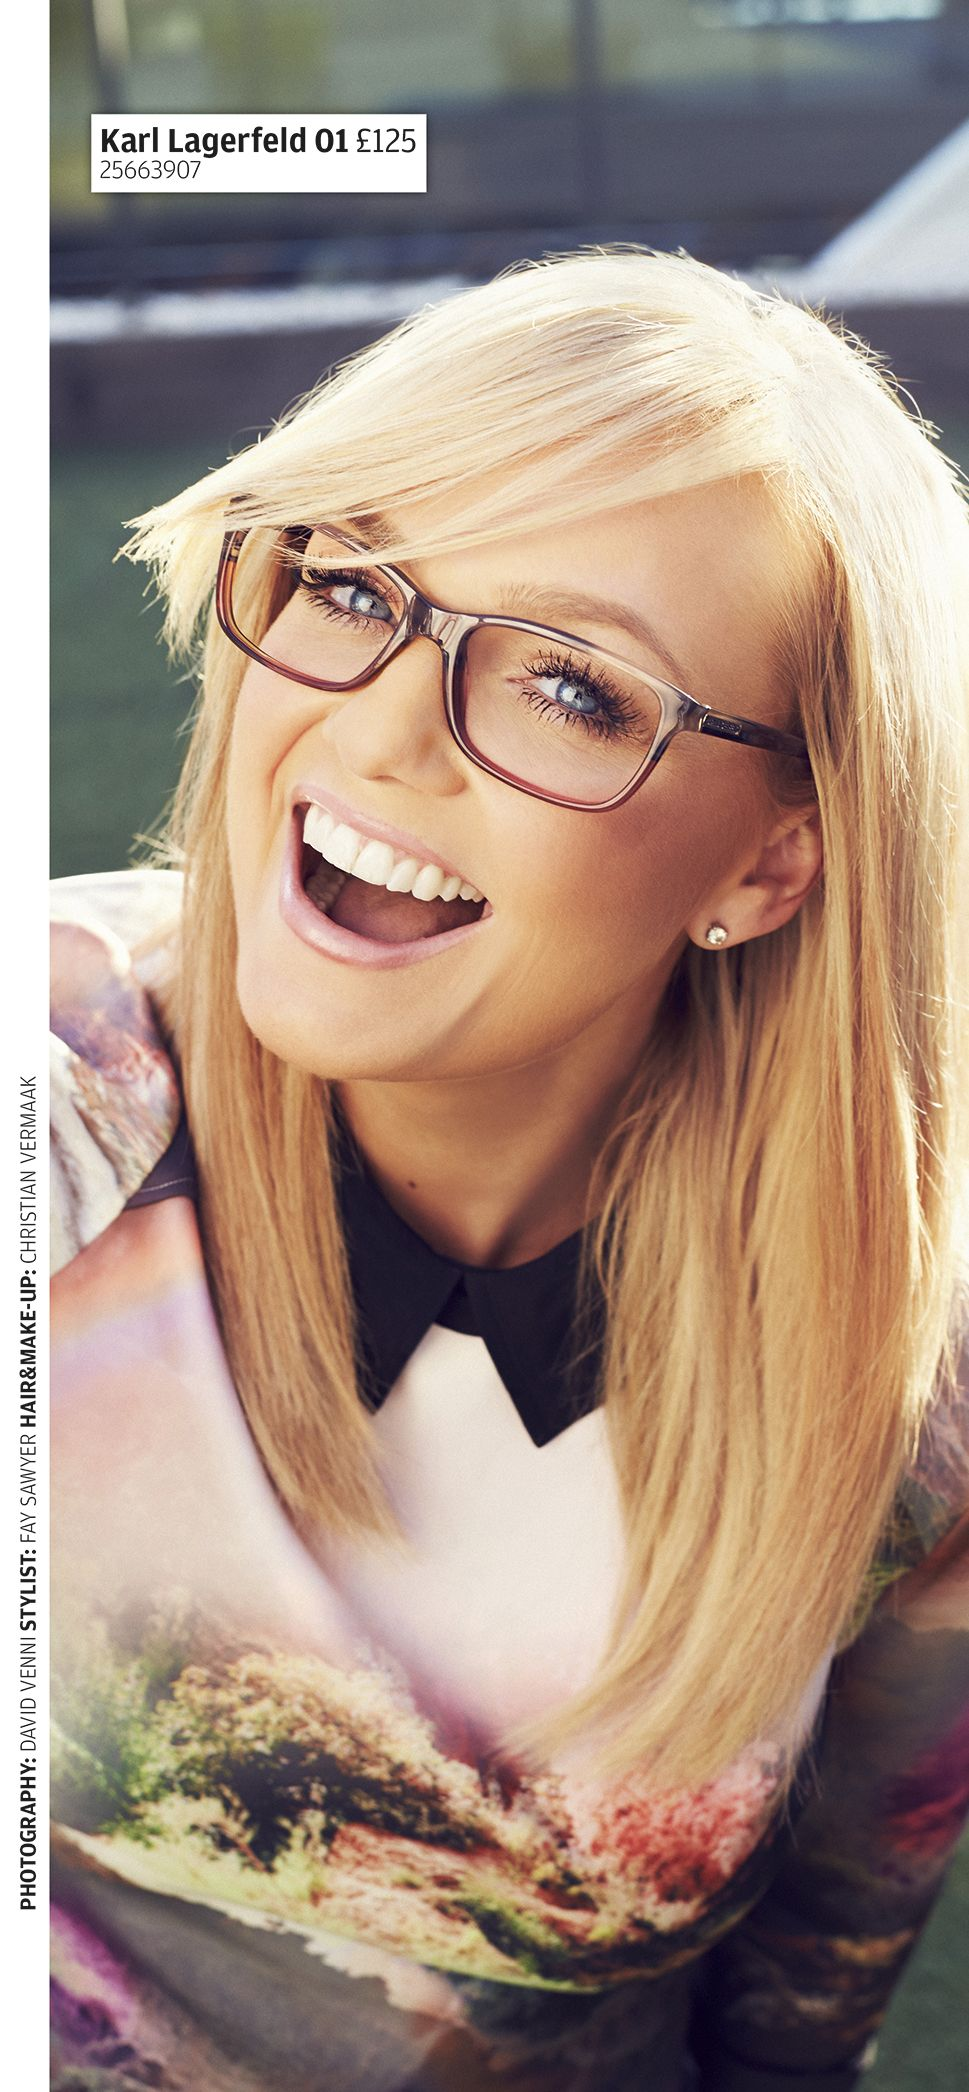 b66c4c19e7 Emma Bunton (Baby Spice) in Karl Lagerfeld 01 by Specsavers.